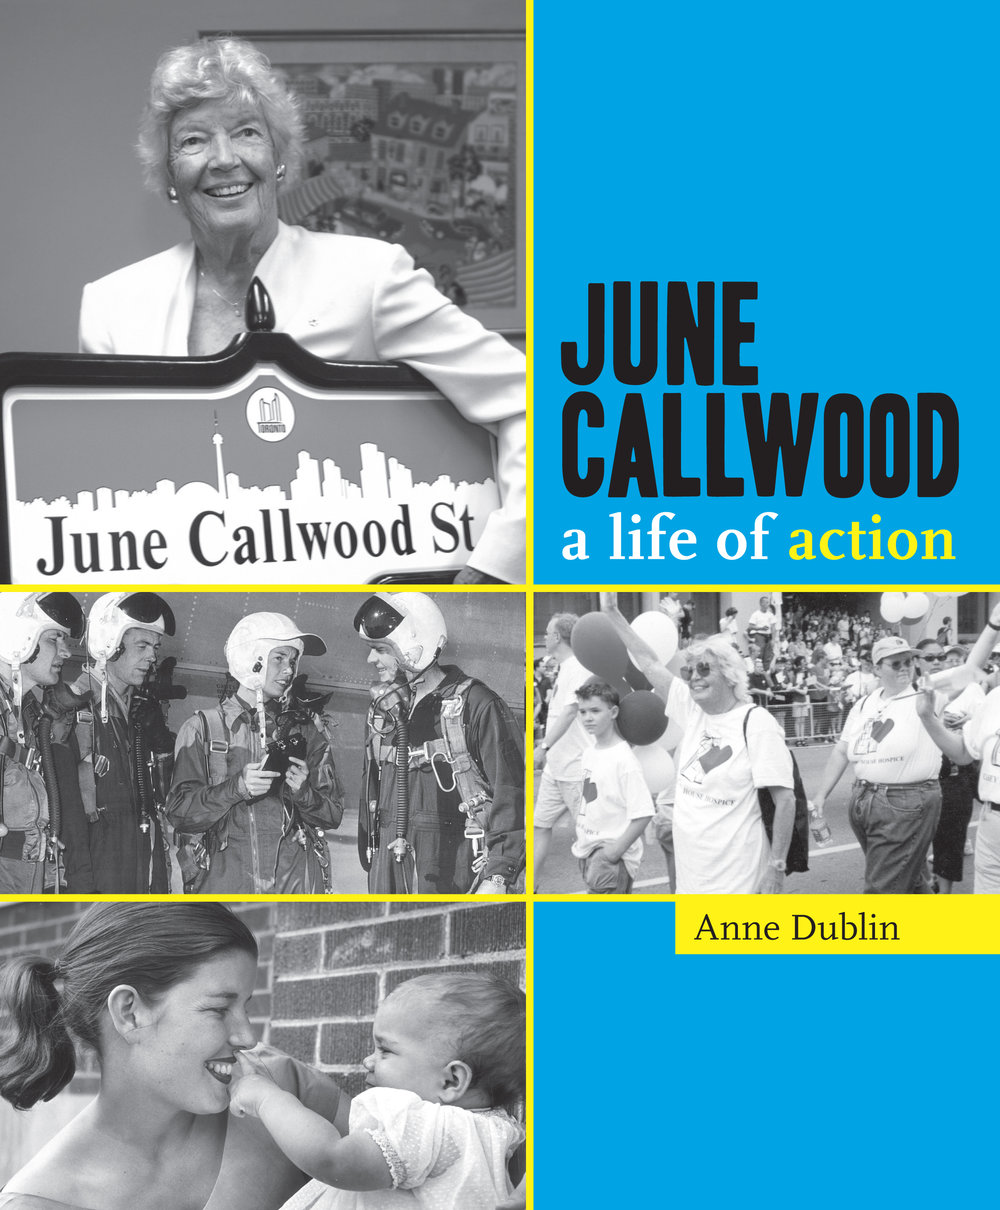 life of anne moody Anne moody, a civil rights activist whose memoir, coming of age in mississippi, unsparingly chronicled the deprivations and injustice she witnessed as a black woman in the jim crow south.